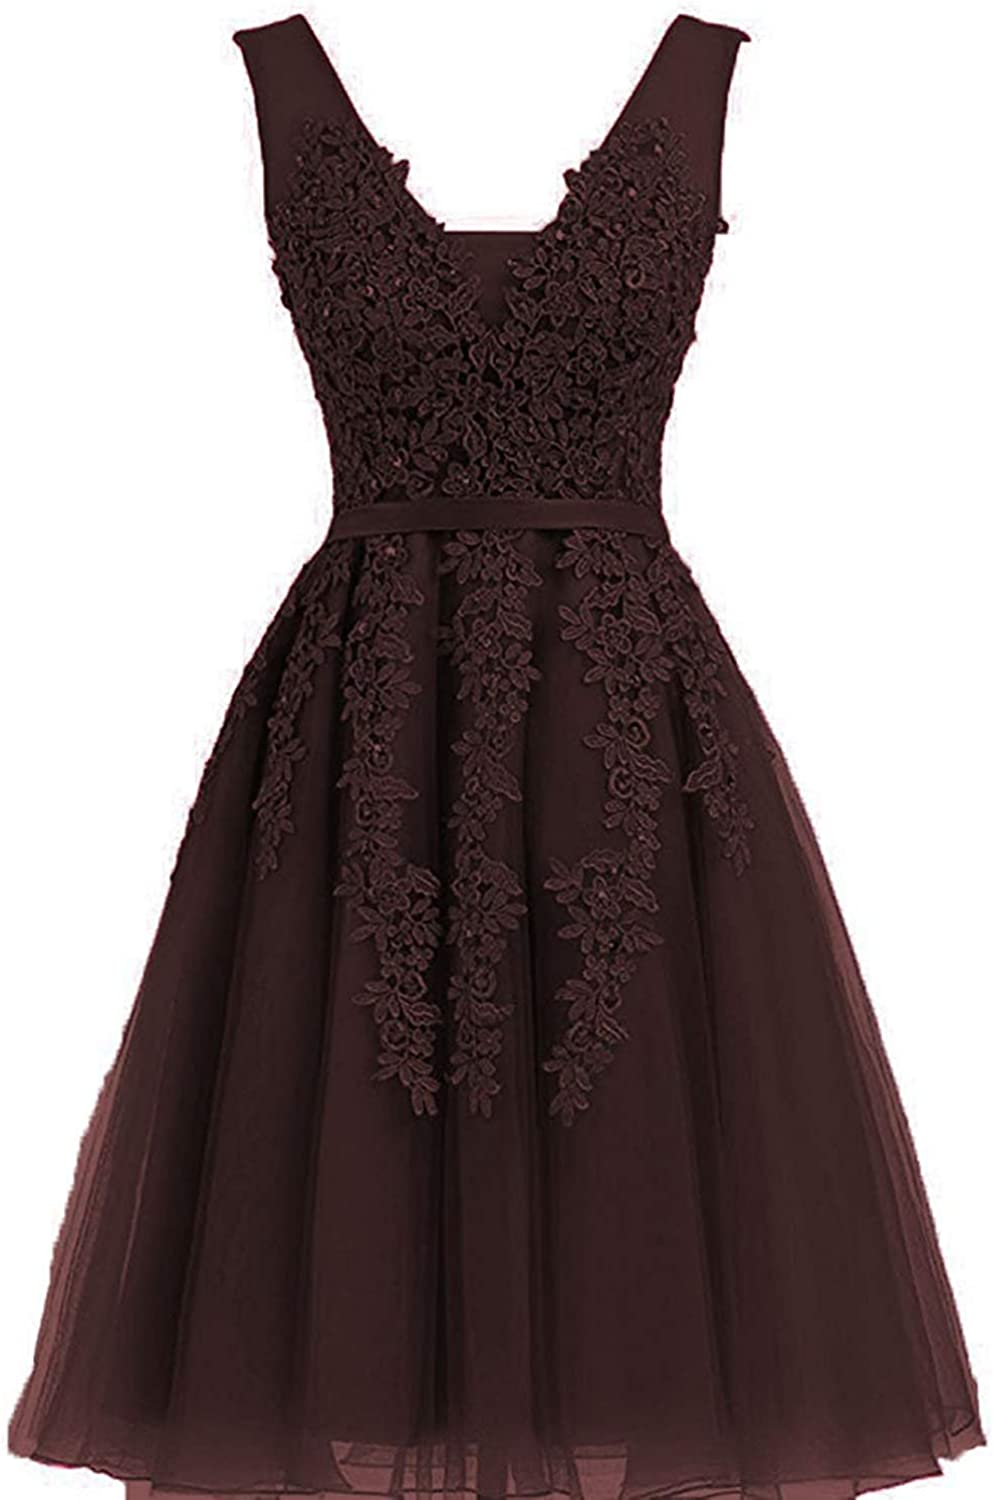 20KyleBird Homecoming Dresses Tulle Lace Appliques Cocktail Dresses Double VNeck ALine Knee Length Prom Evening Party Gowns